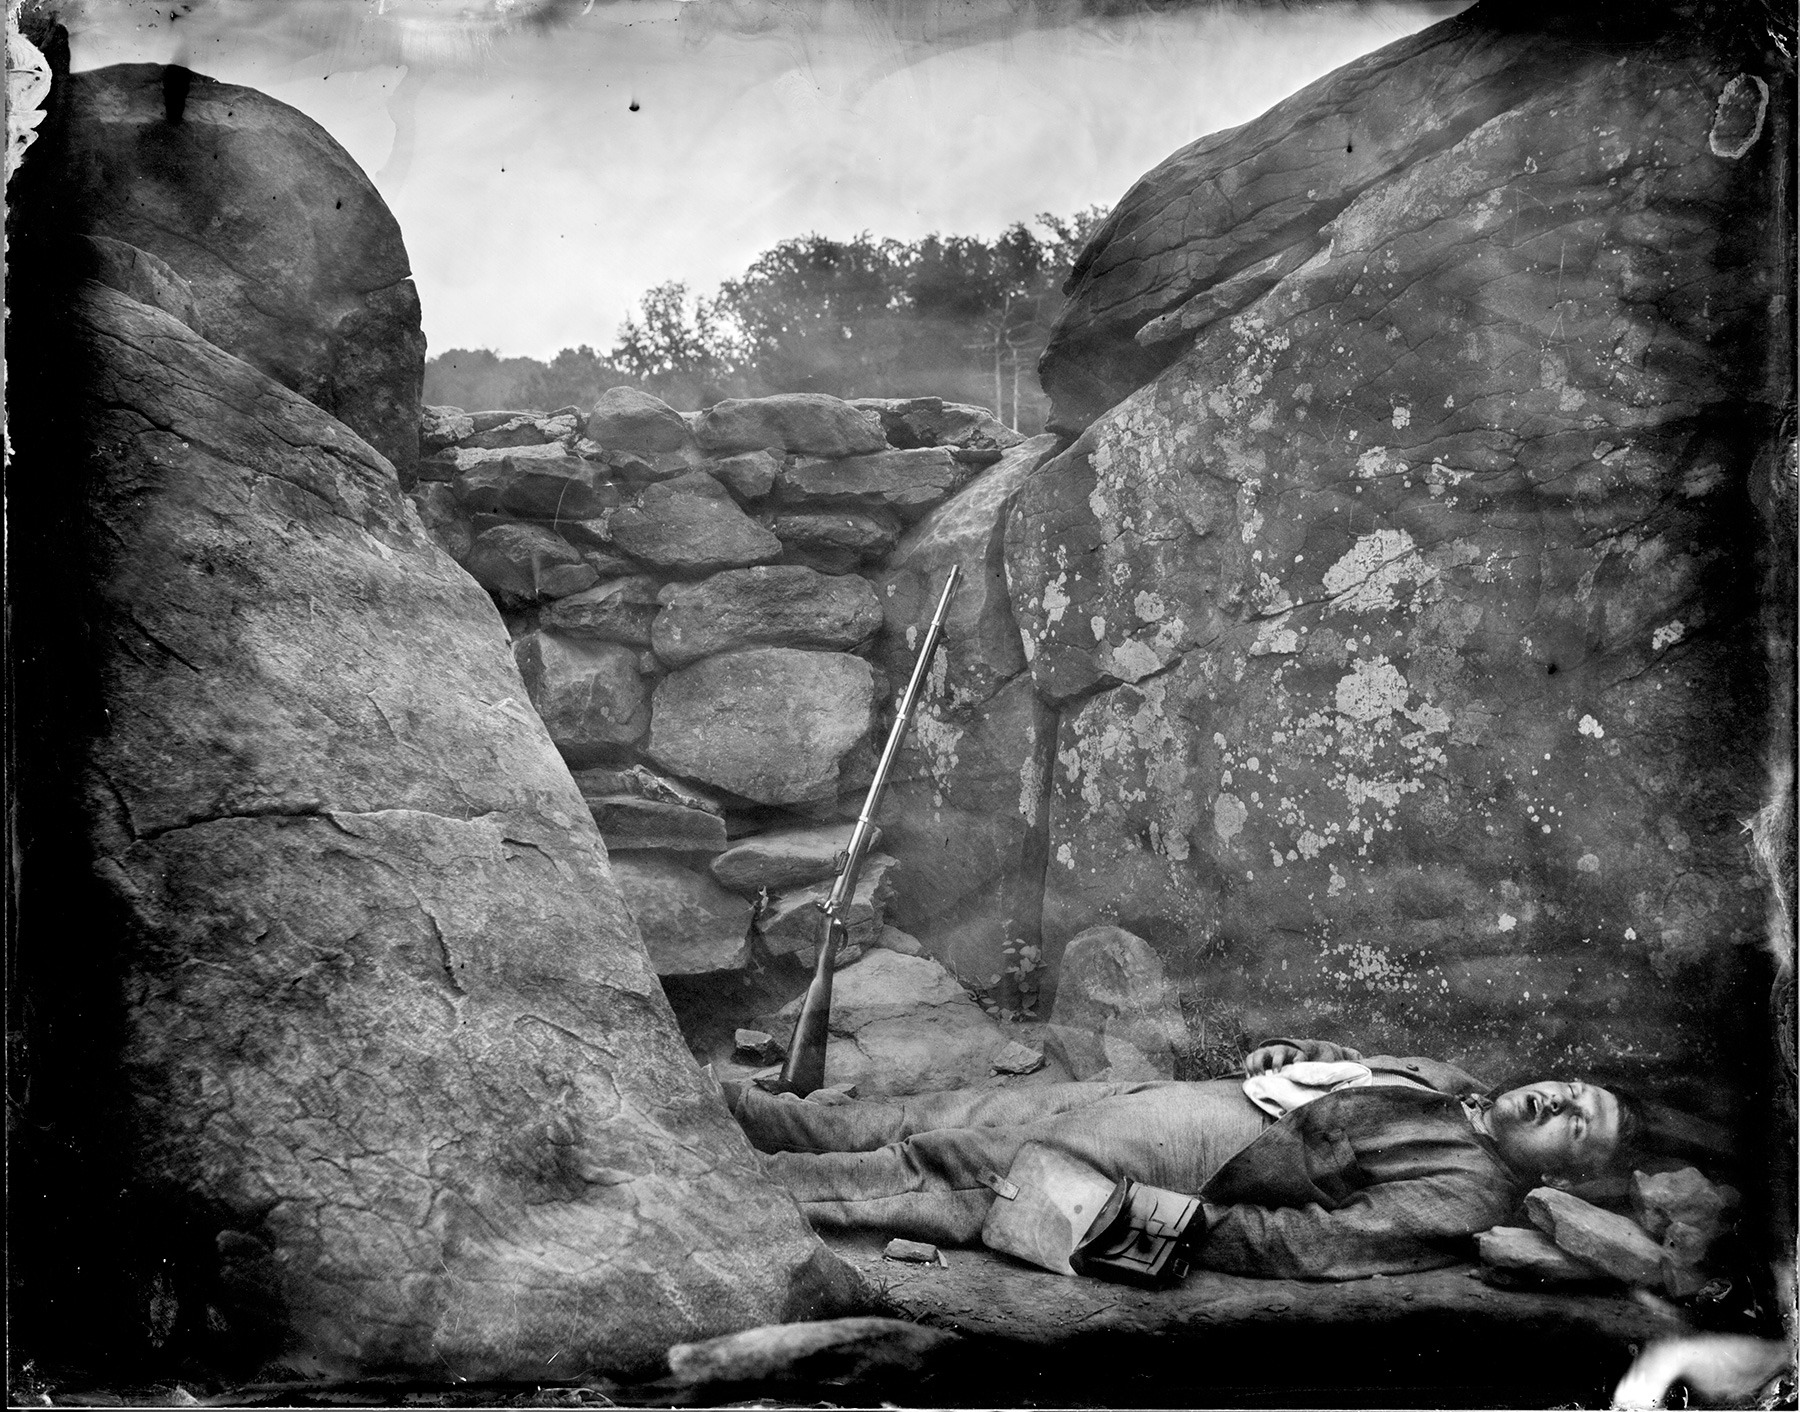 Sharpshooter's Den After Gardner, Gettysburg, 2013